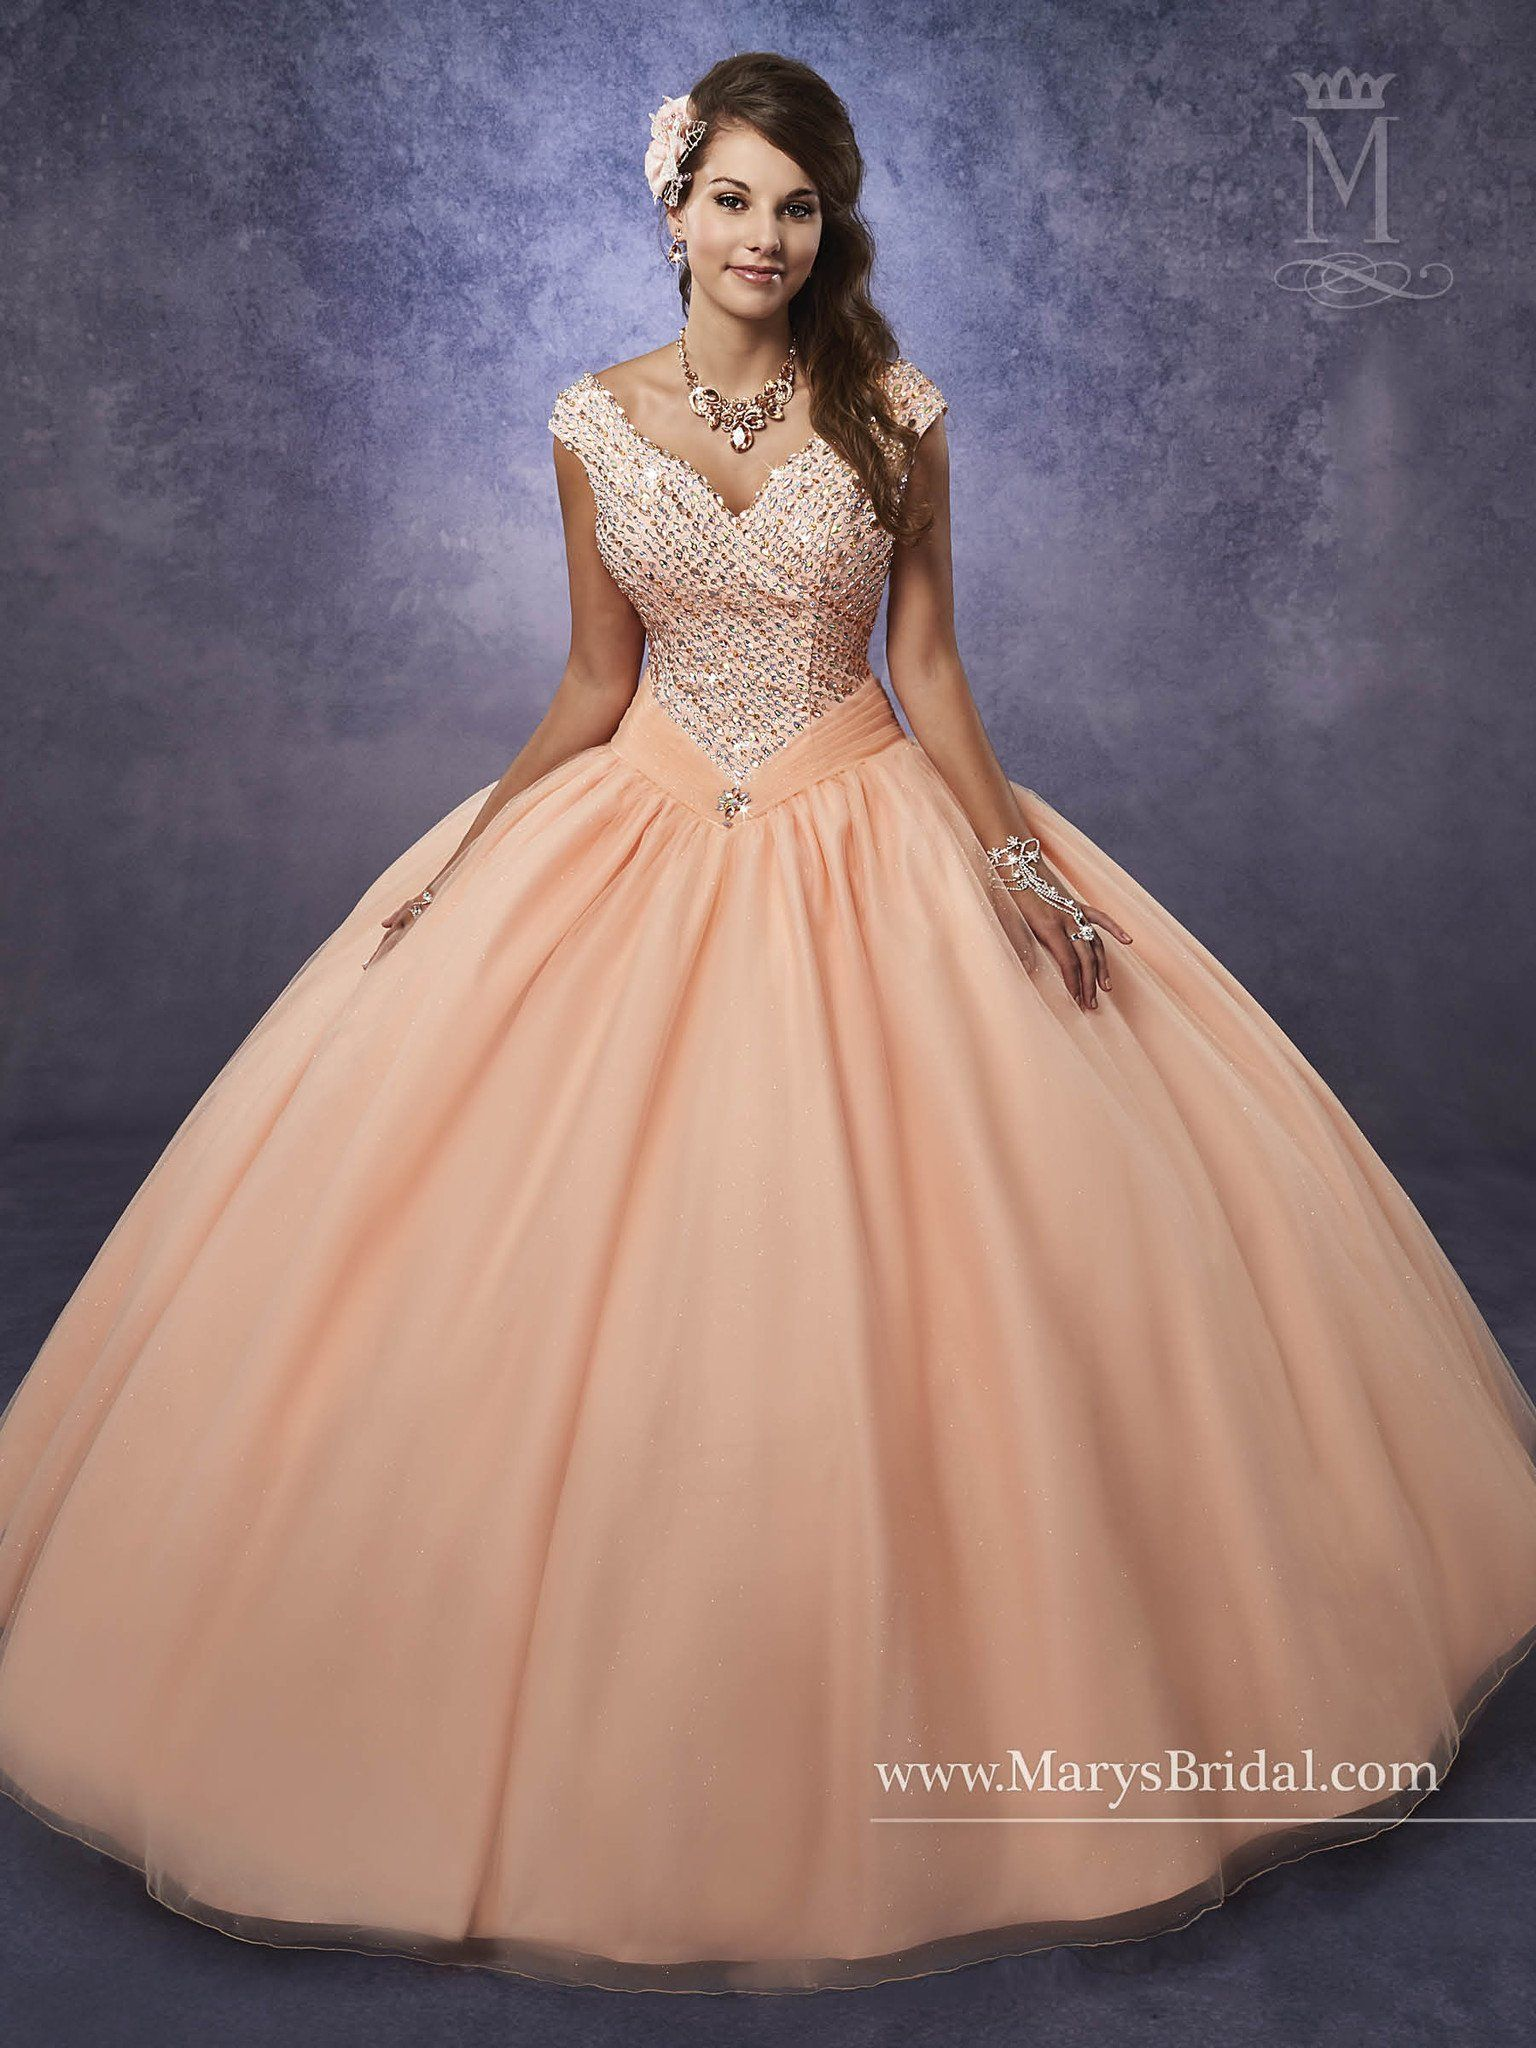 Maryus bridal princess collection quinceanera dress style q